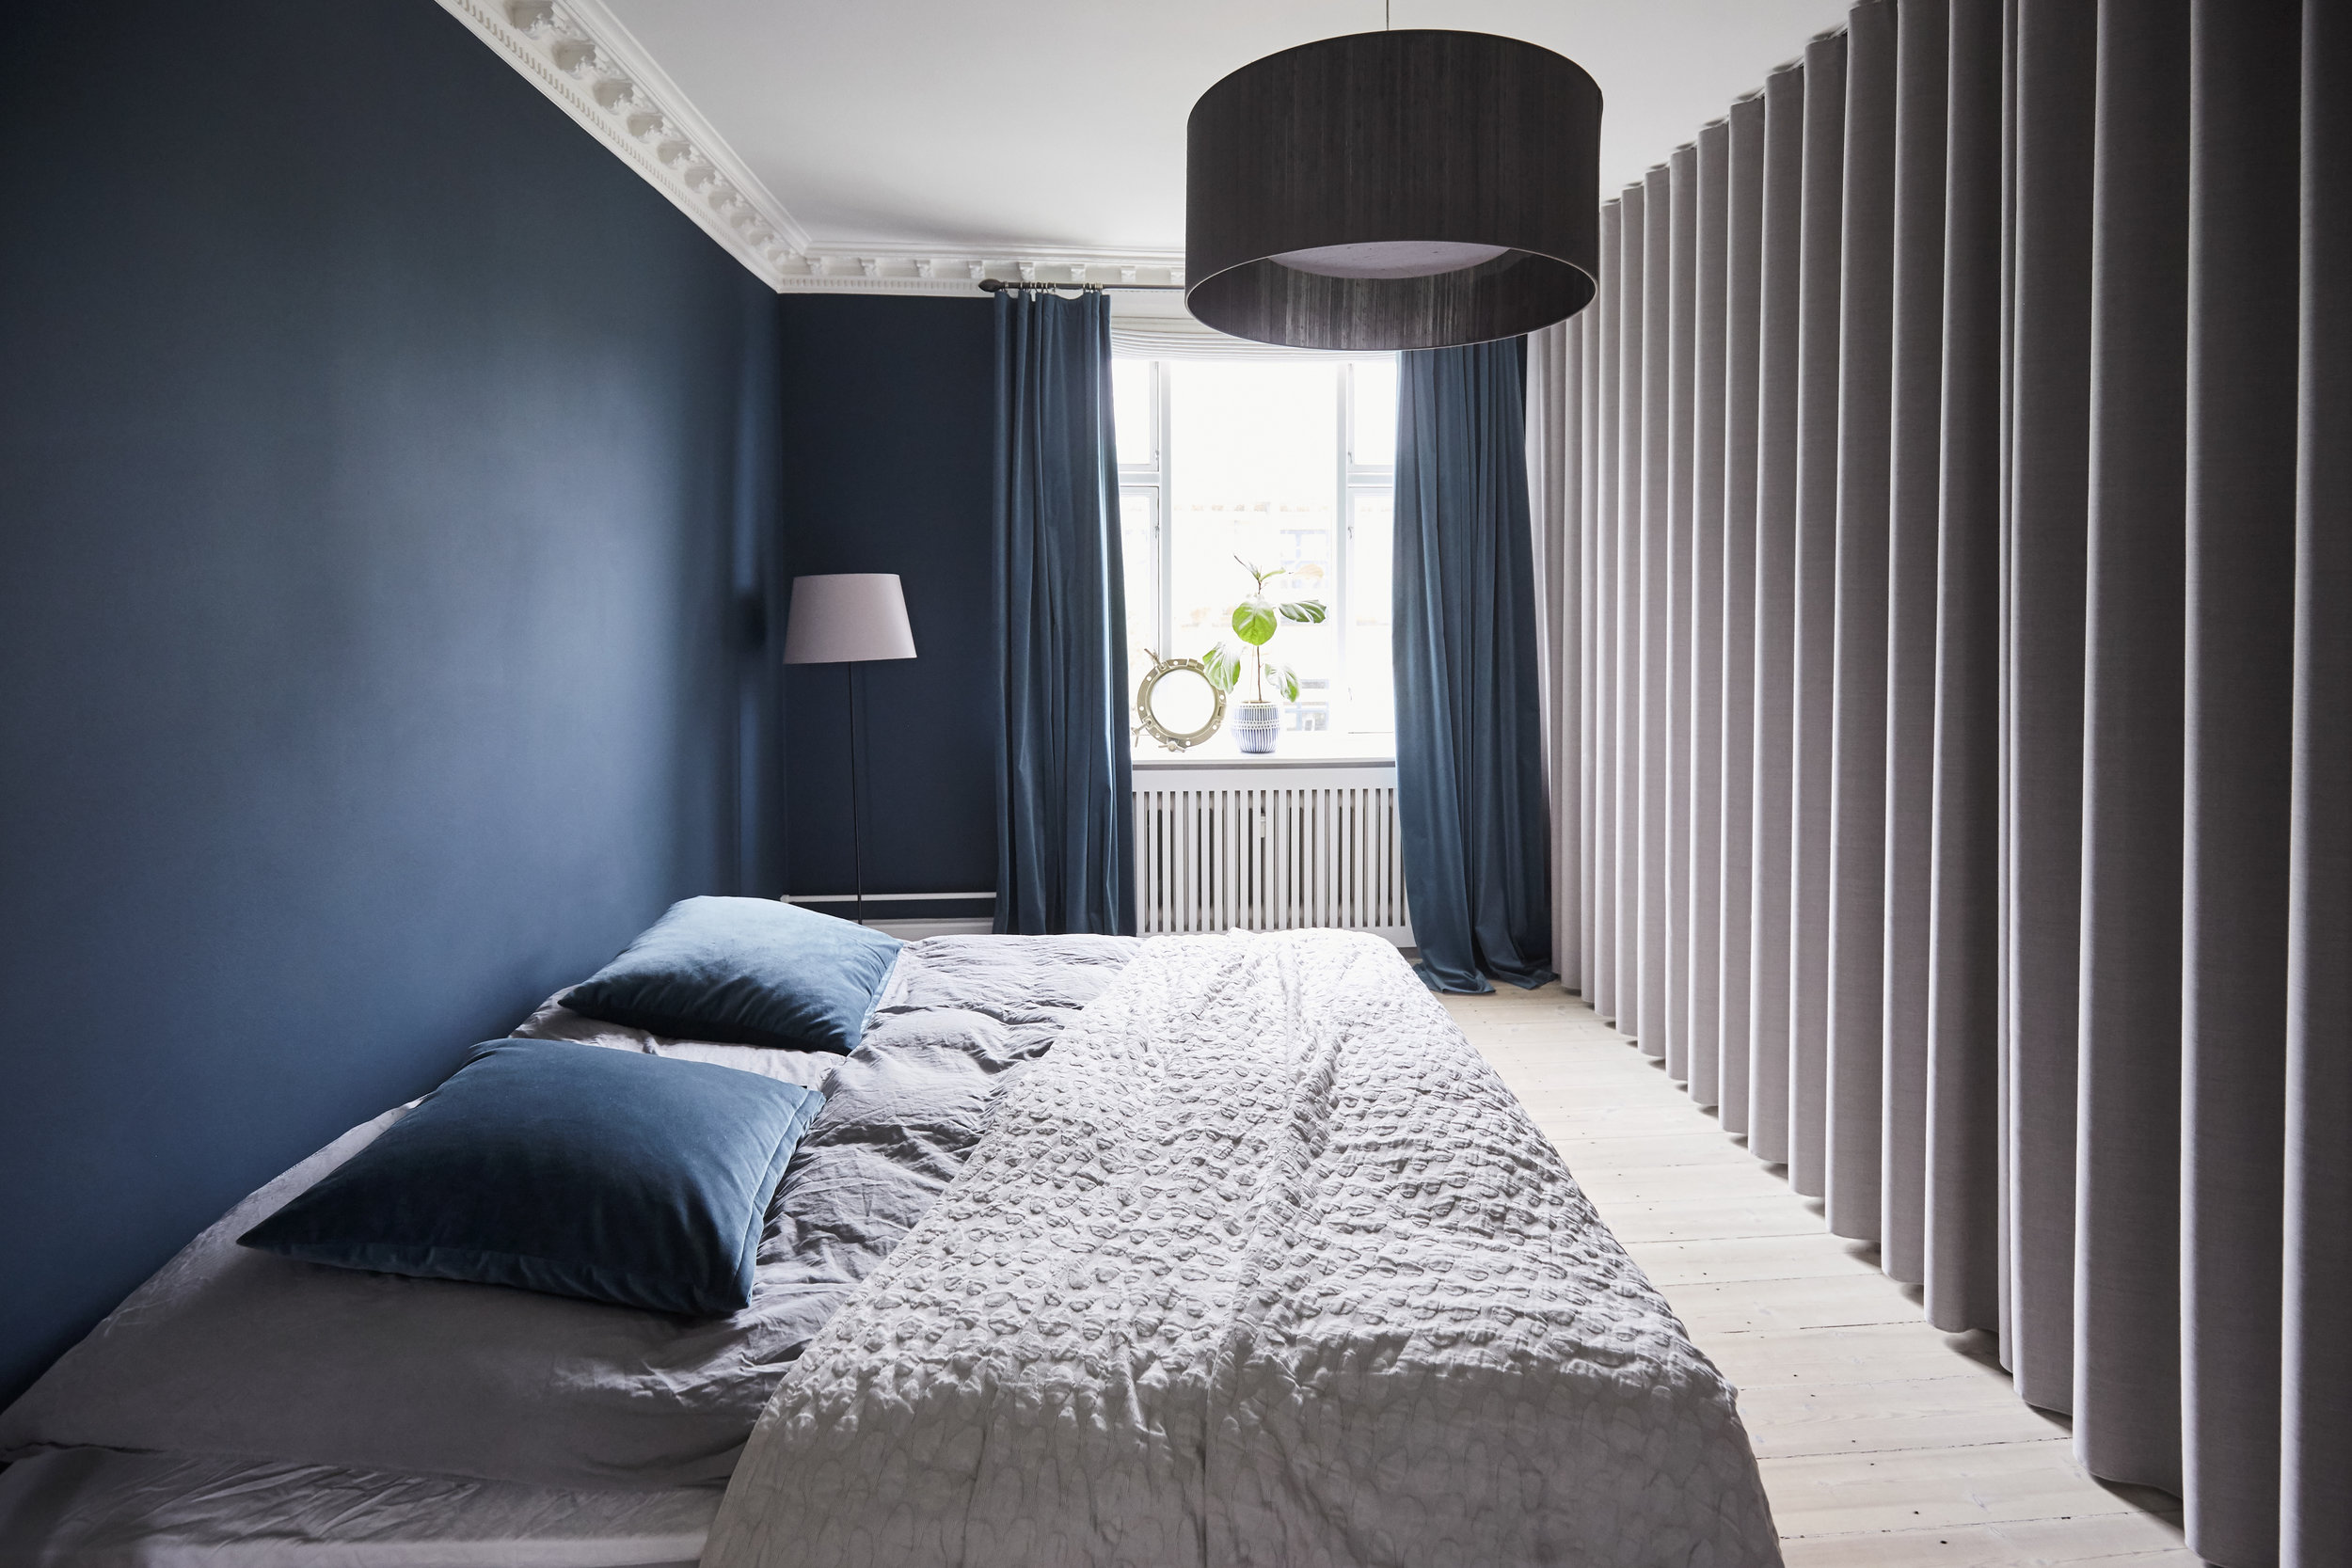 Simplicity Light Grey Mood og Velvet Midnight Blue, &Drape showroom. Foto: Indretmagazine. Stylesystemet. Fotograf Trine Bukh.